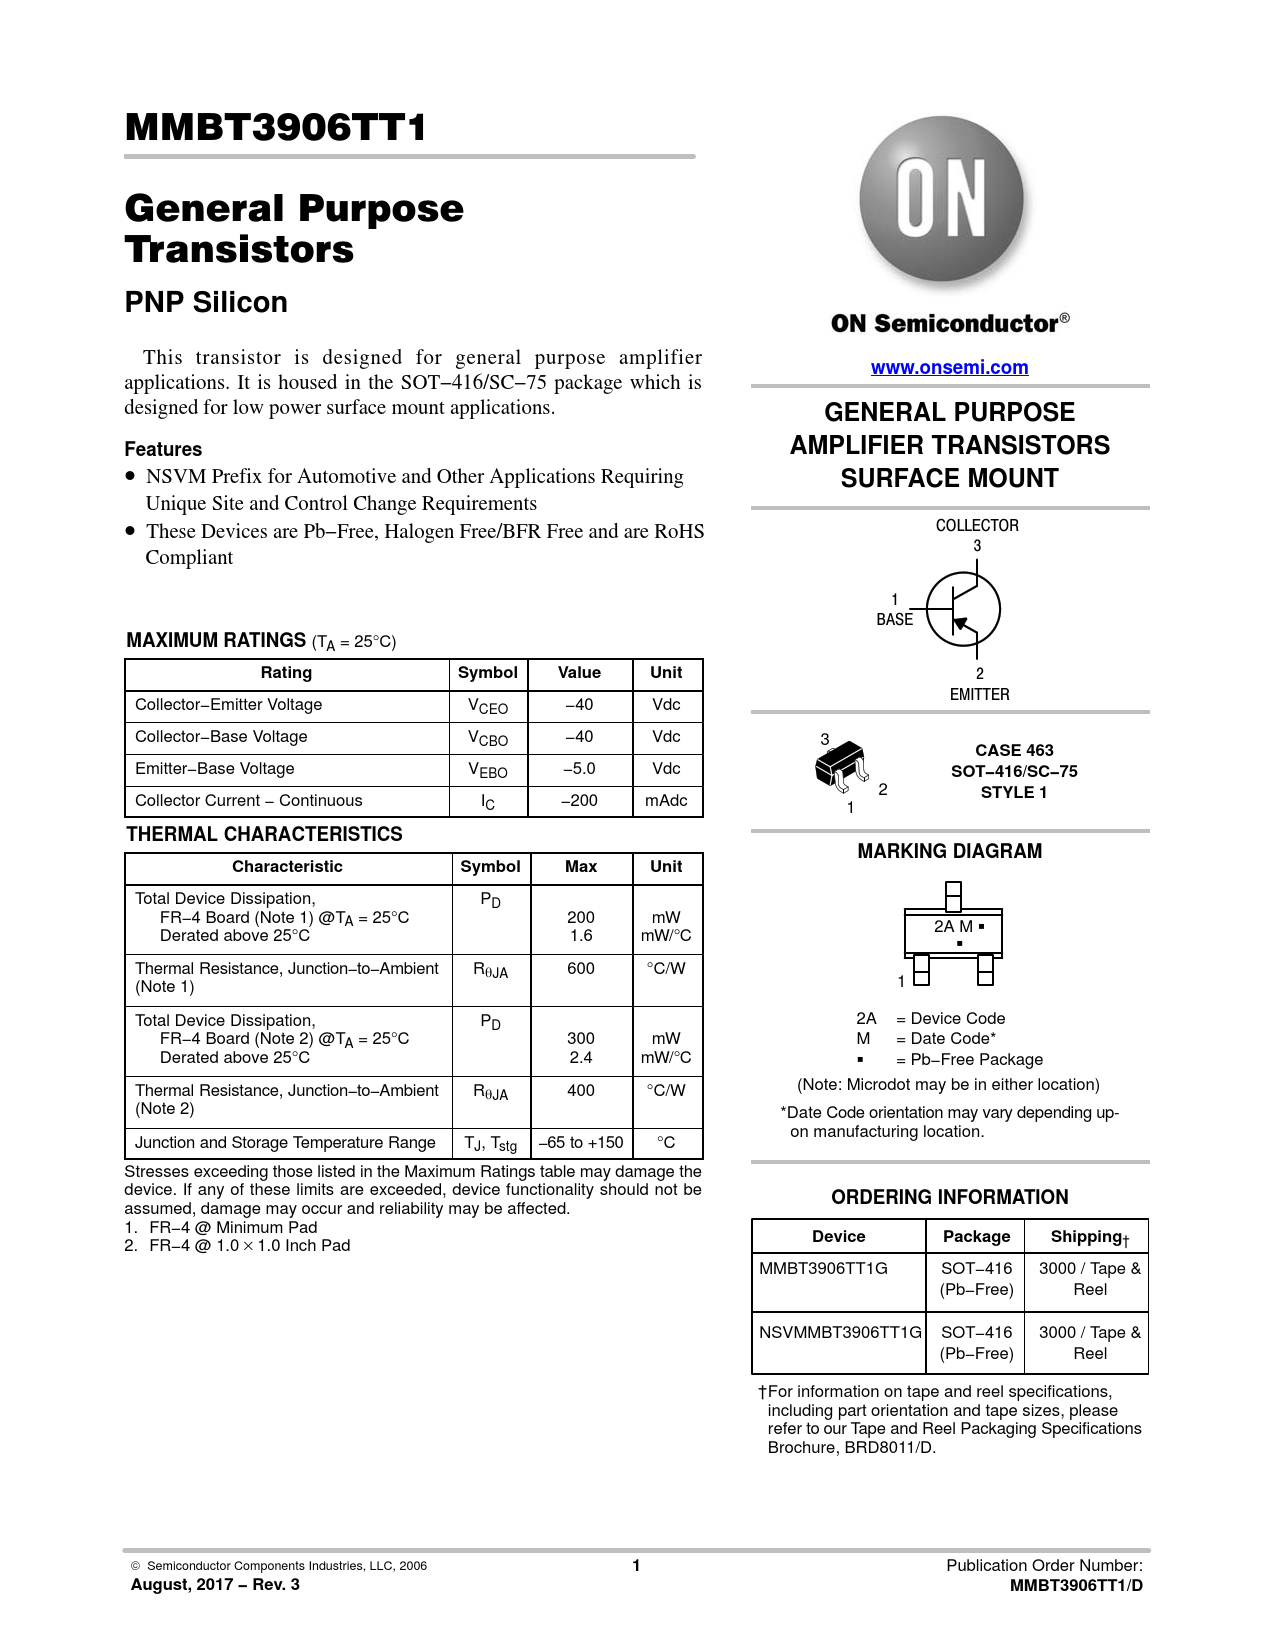 Datasheet MMBT3906T ON Semiconductor, Revision: 3